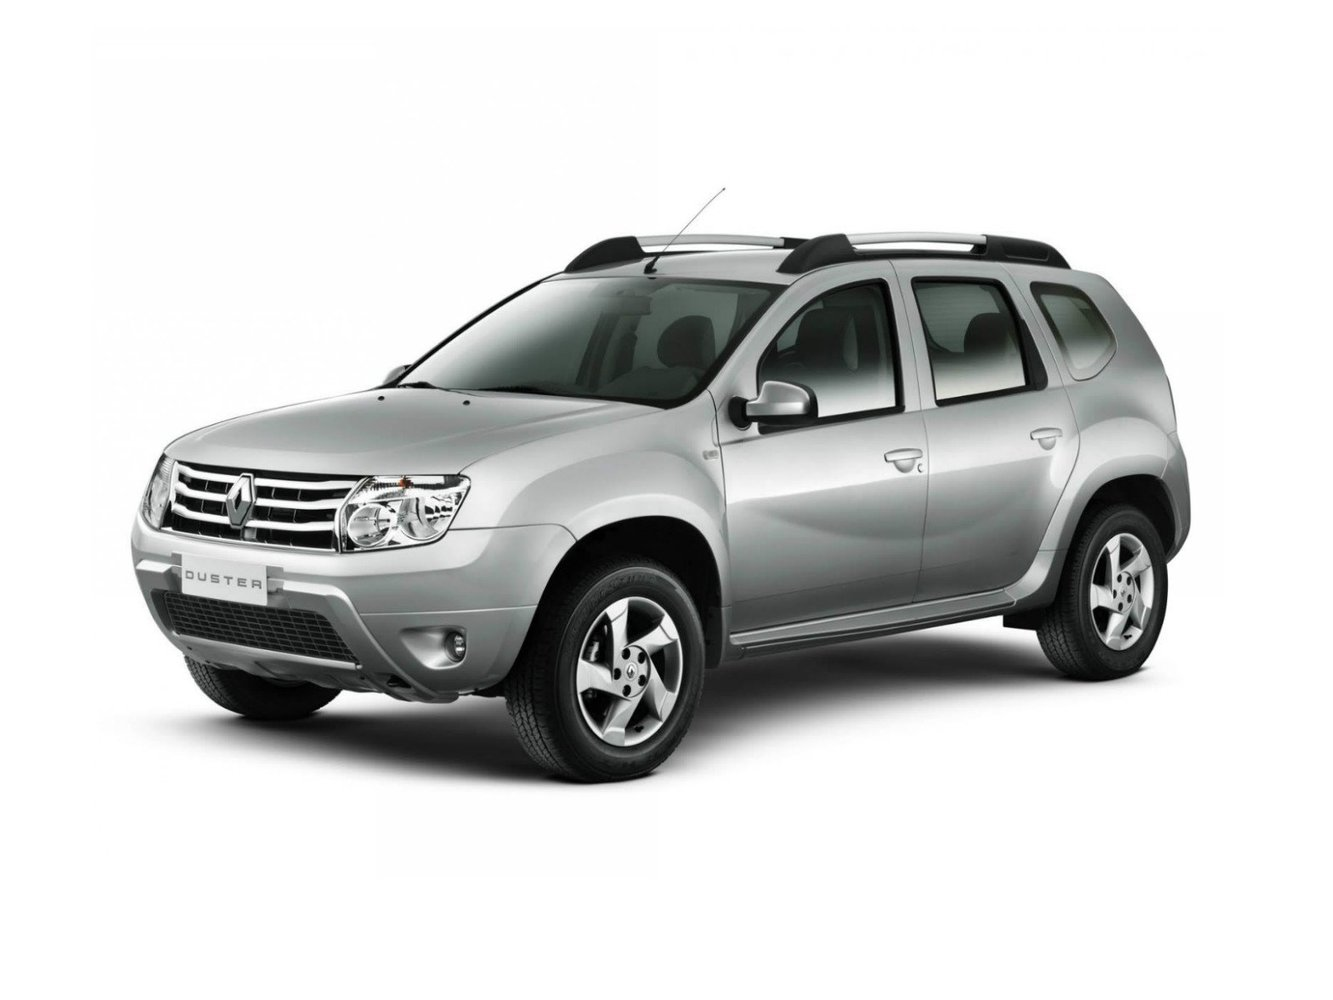 Renault Duster 2011 - 2015